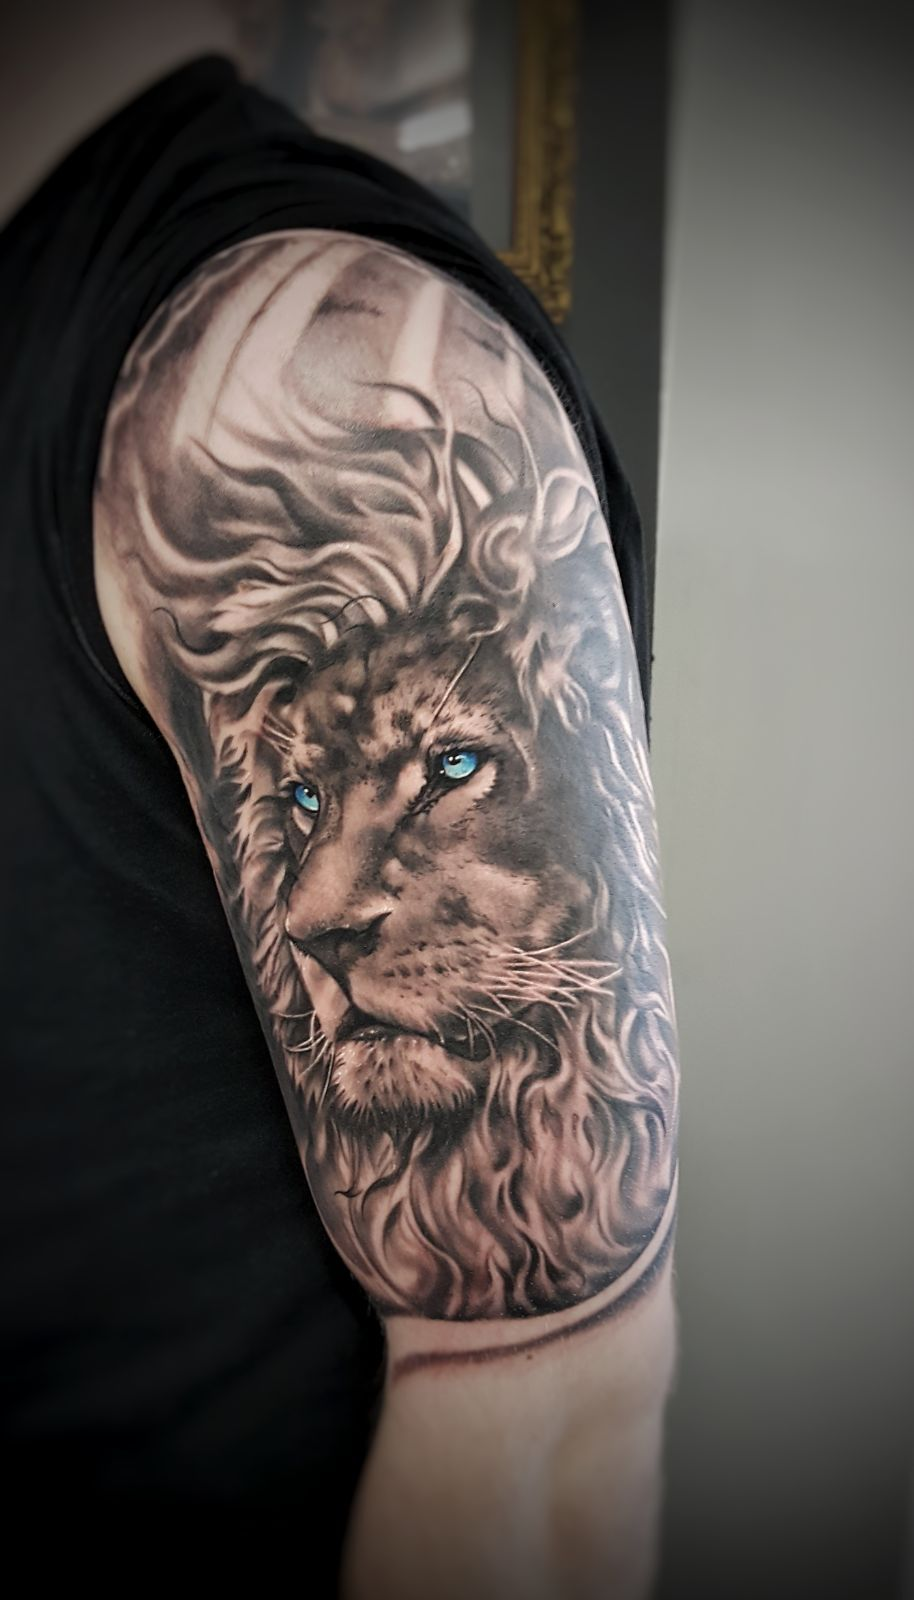 Lion Tattoo By Emil Limited Availability At Redemption Tattoo